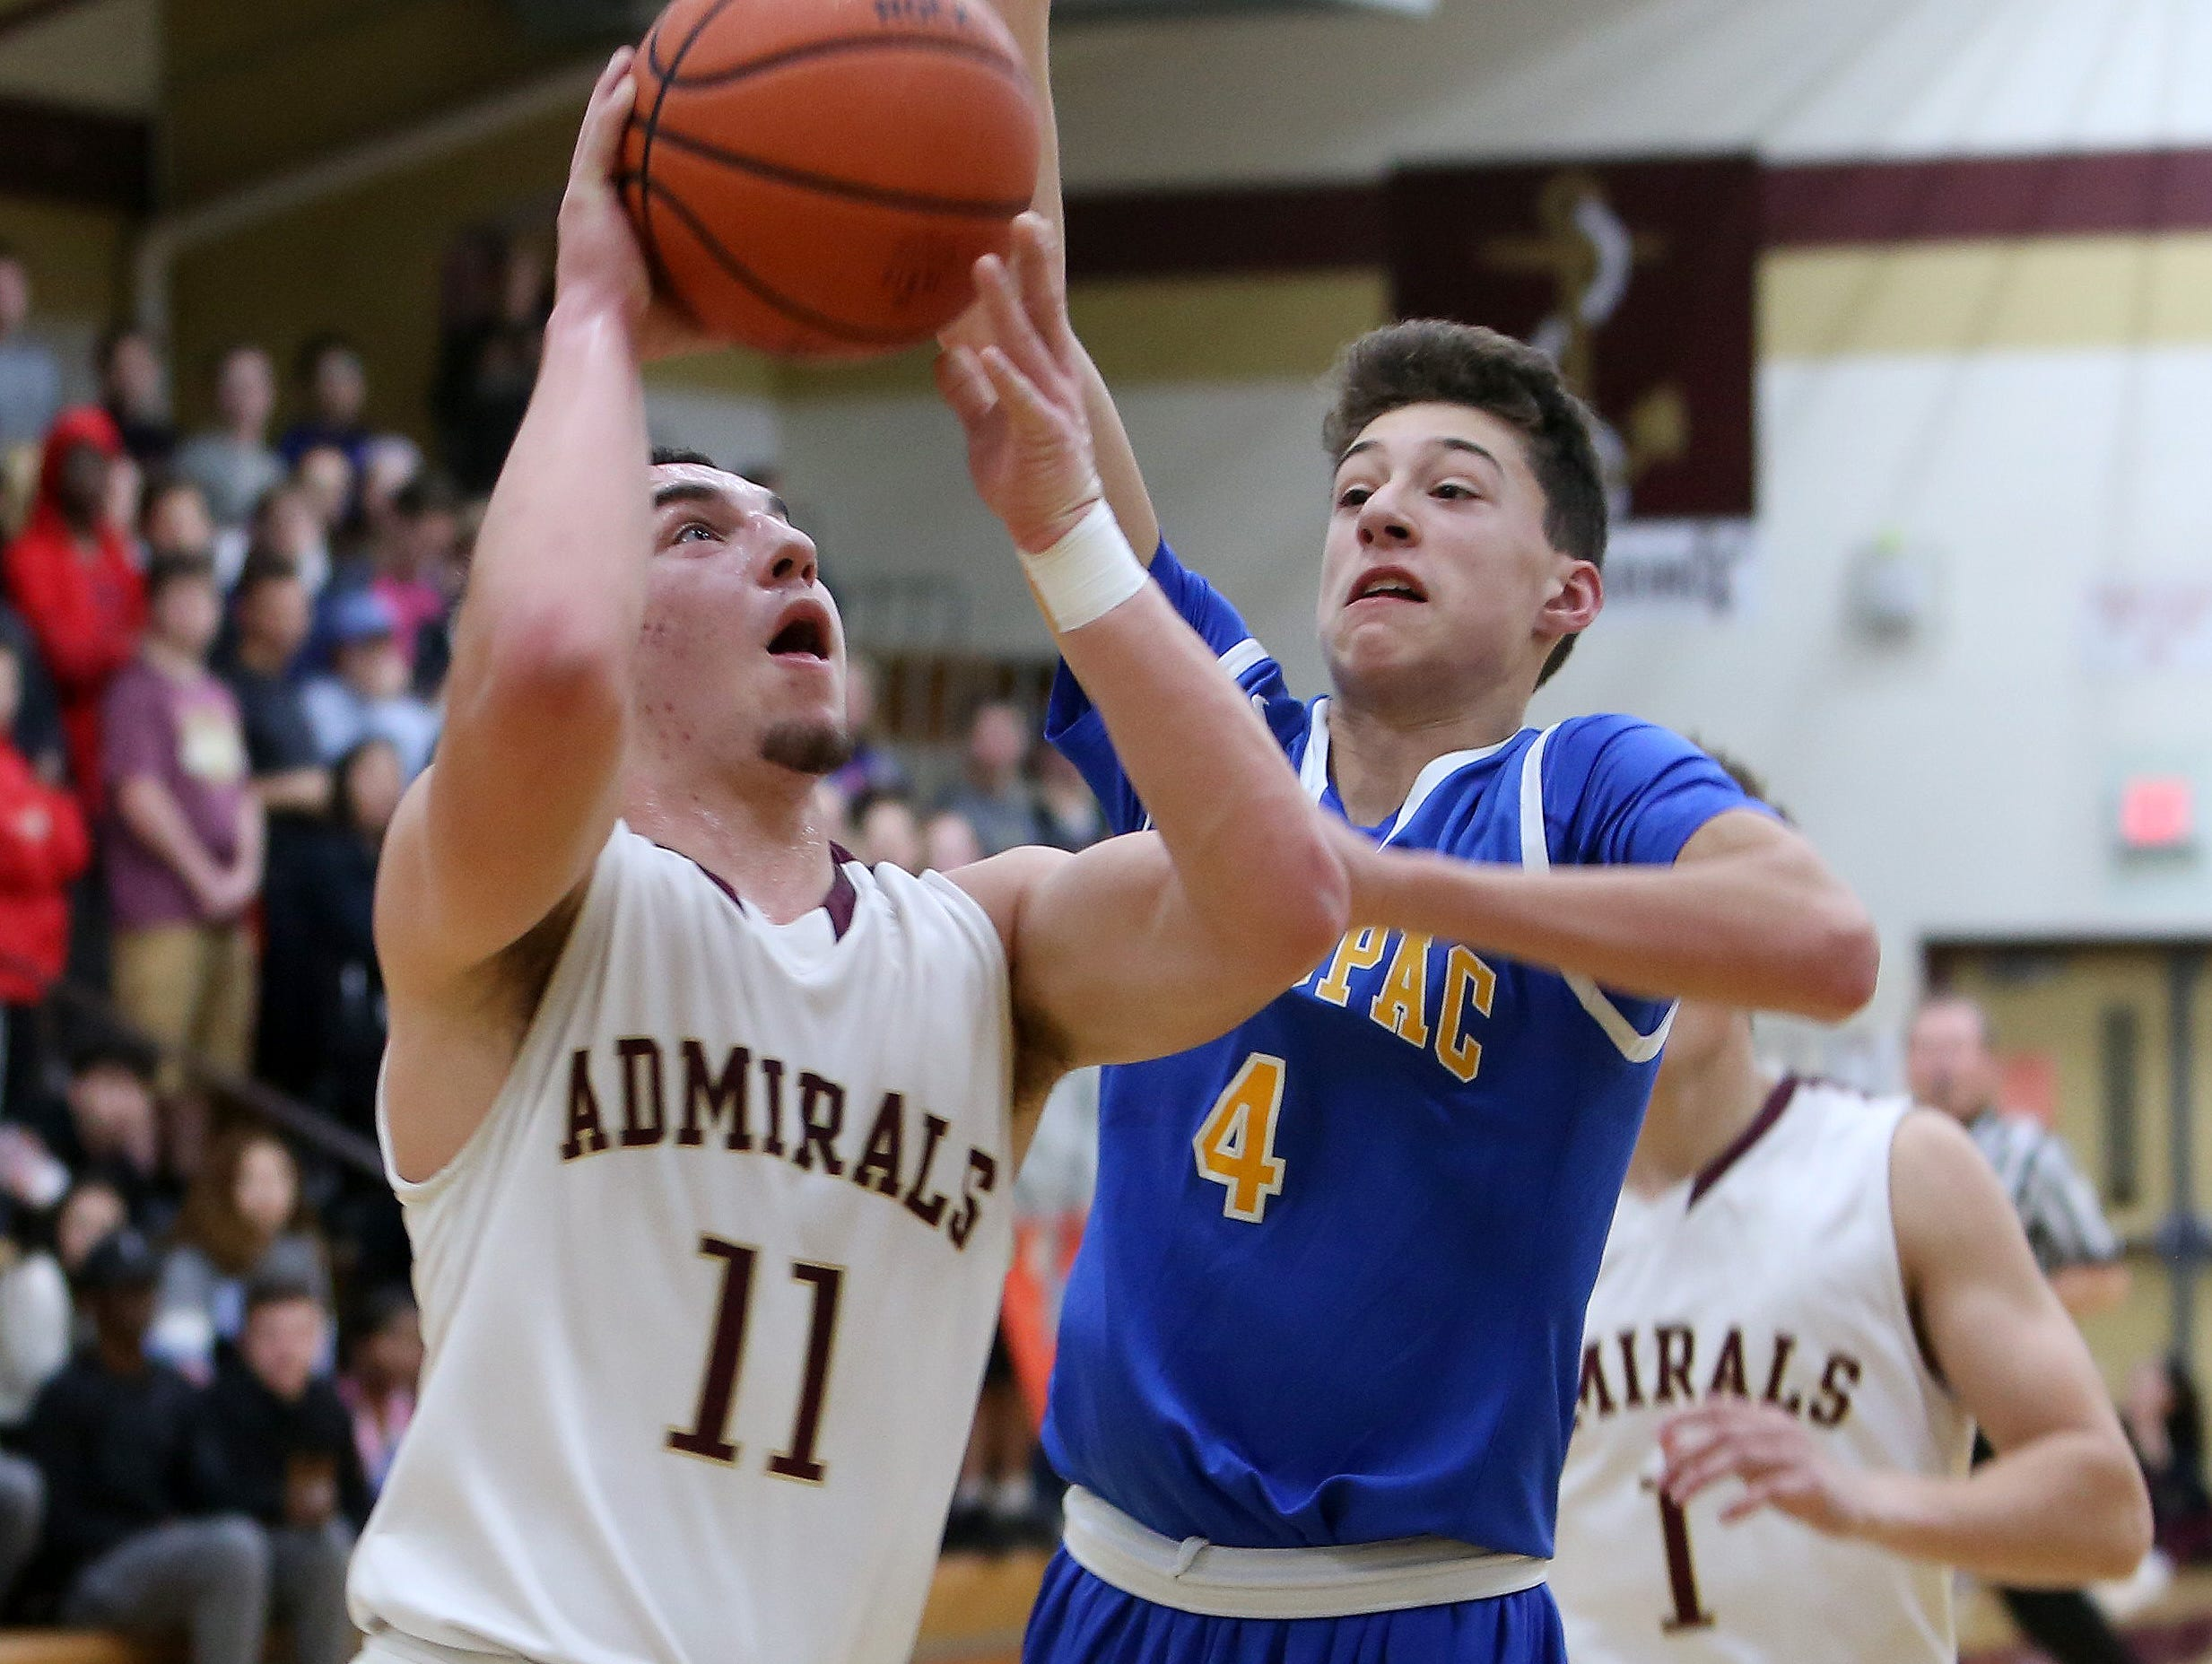 Arlington's Zach Dingee (11) goes up for a shot in front of Mahopac's Zack Puckhaber (4) during a boys basketball game at Arlington High School Jan. 12, 2017.